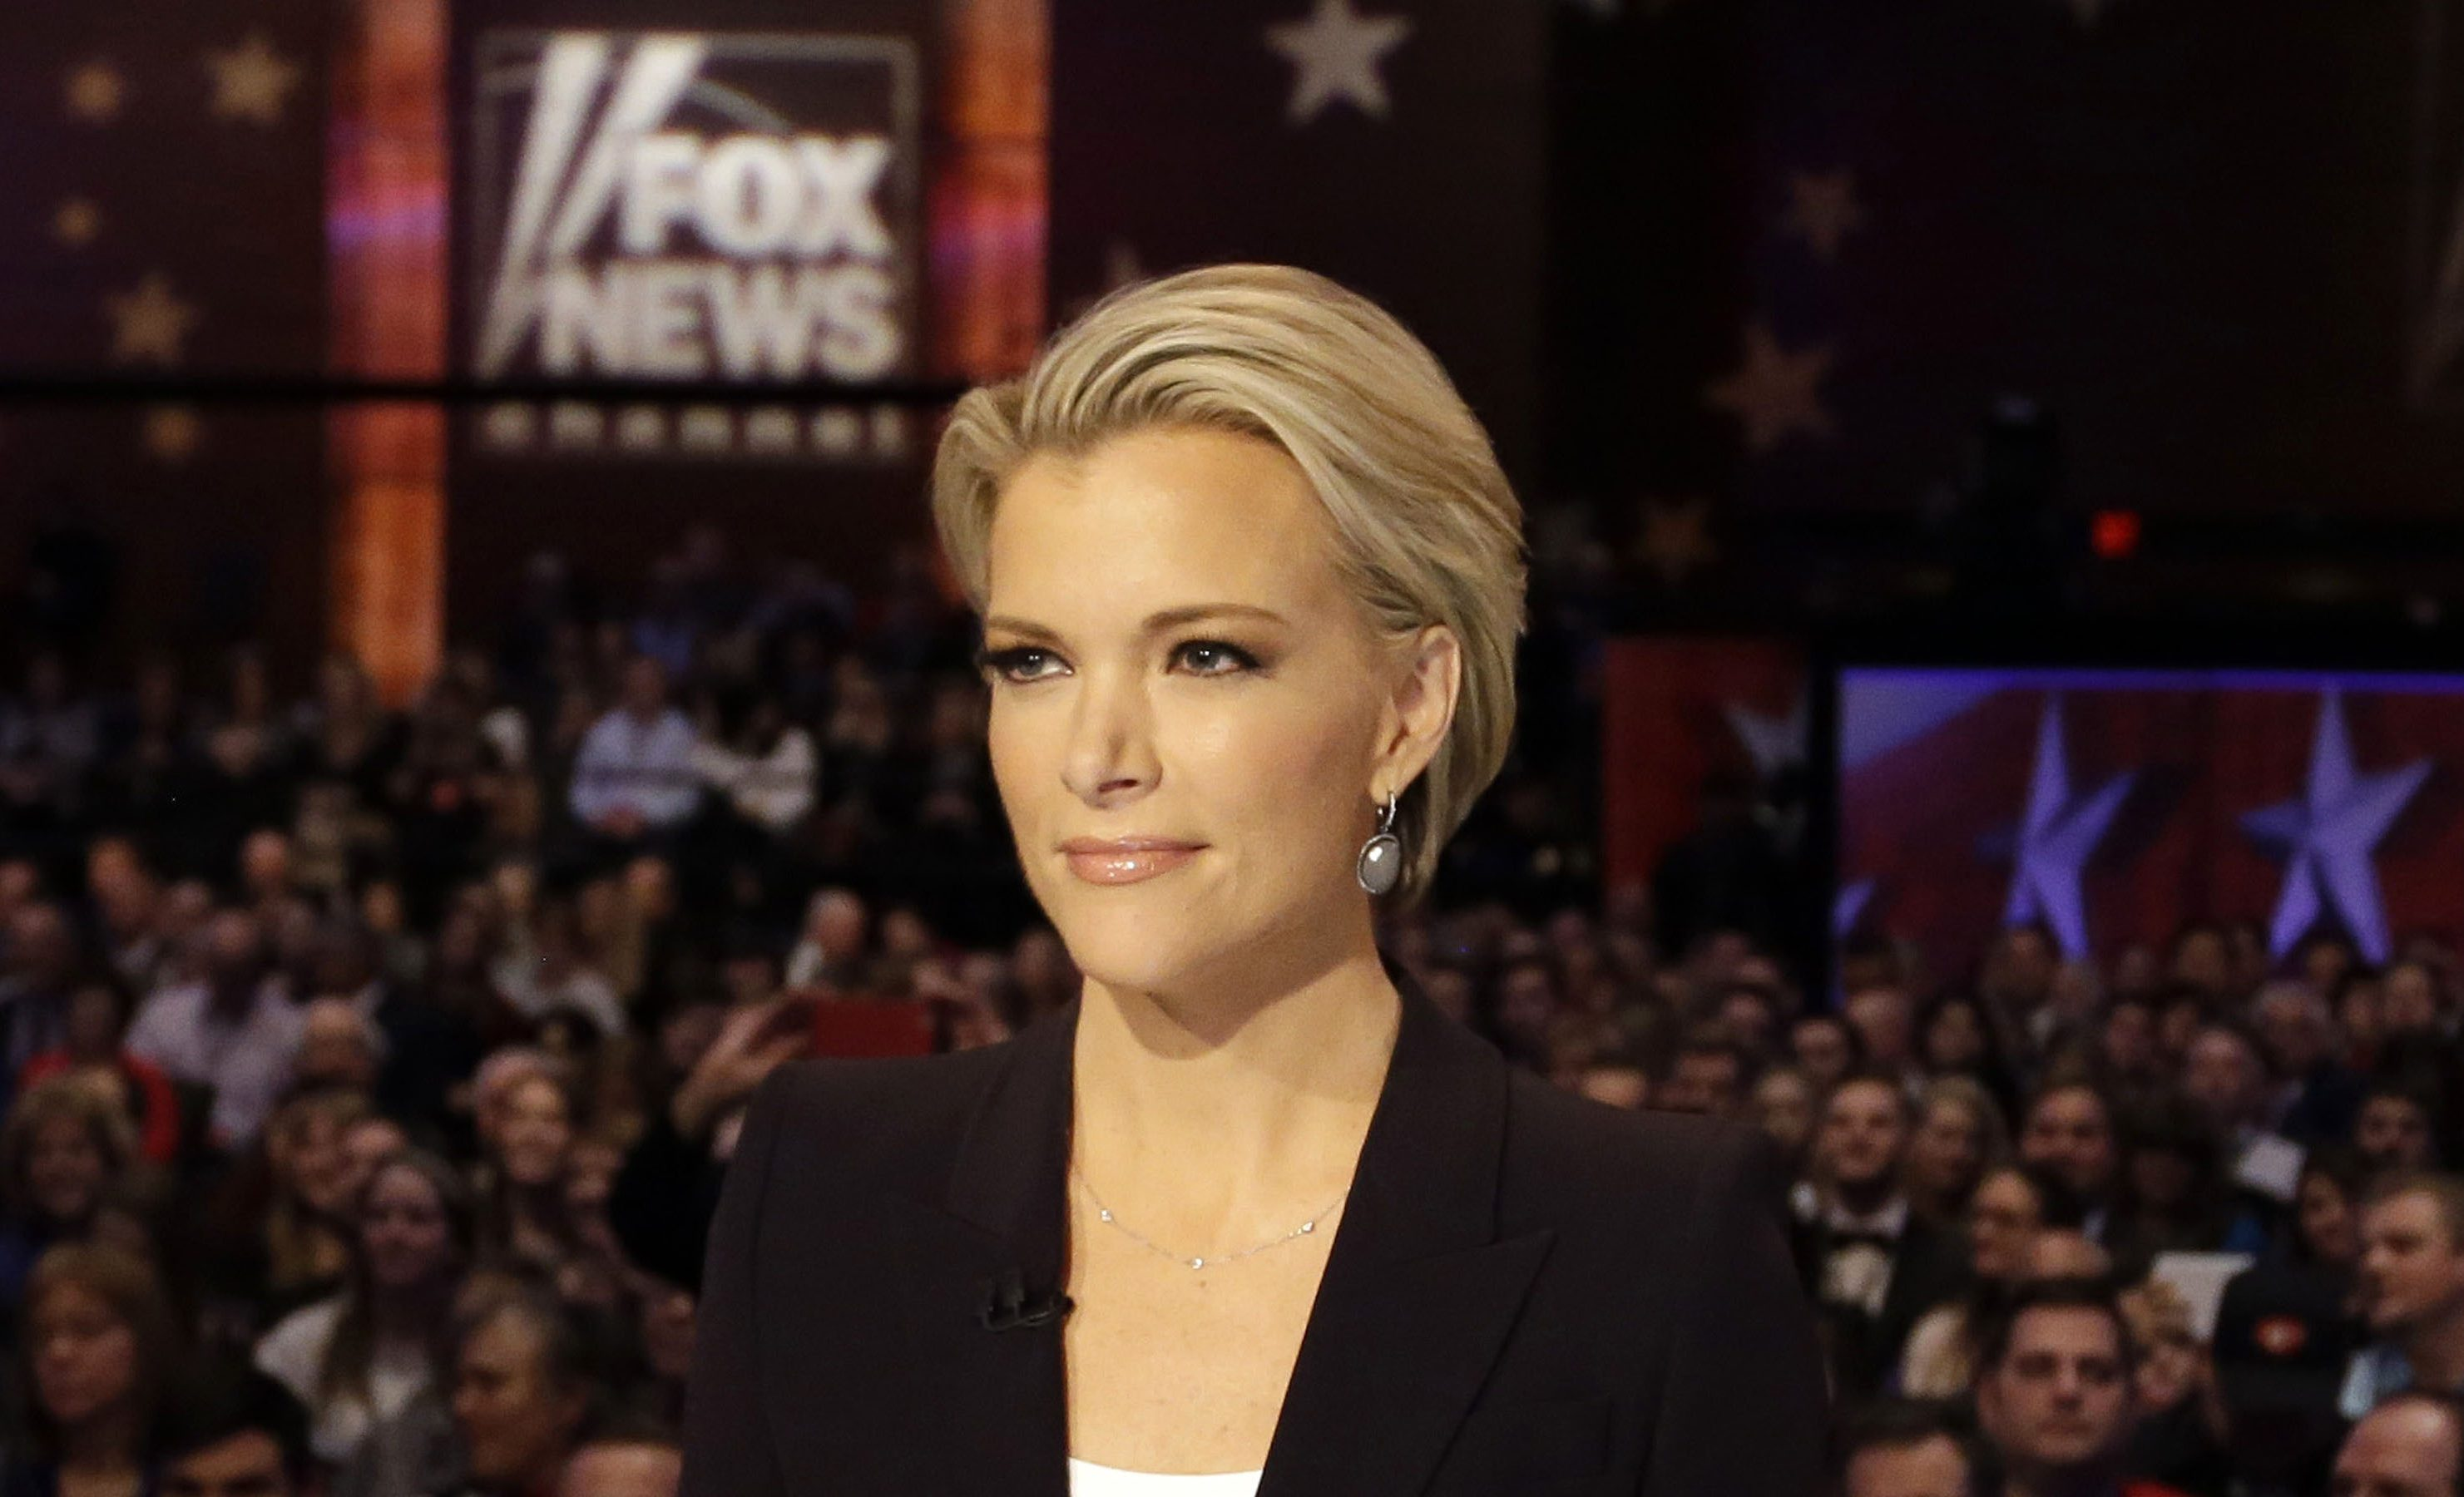 """FILE - In this Jan. 28, 2016 photo, Moderator Megyn Kelly waits for the start of the Republican presidential primary debate in Des Moines, Iowa.  Donald Trump says people who are bullied """"gotta get over it"""" and fight back. It's a message he delivers to Megyn Kelly, the Fox News anchor who sat down with him for an interview months after he savaged her on Twitter and elsewhere.  (AP Photo/Chris Carlson)"""